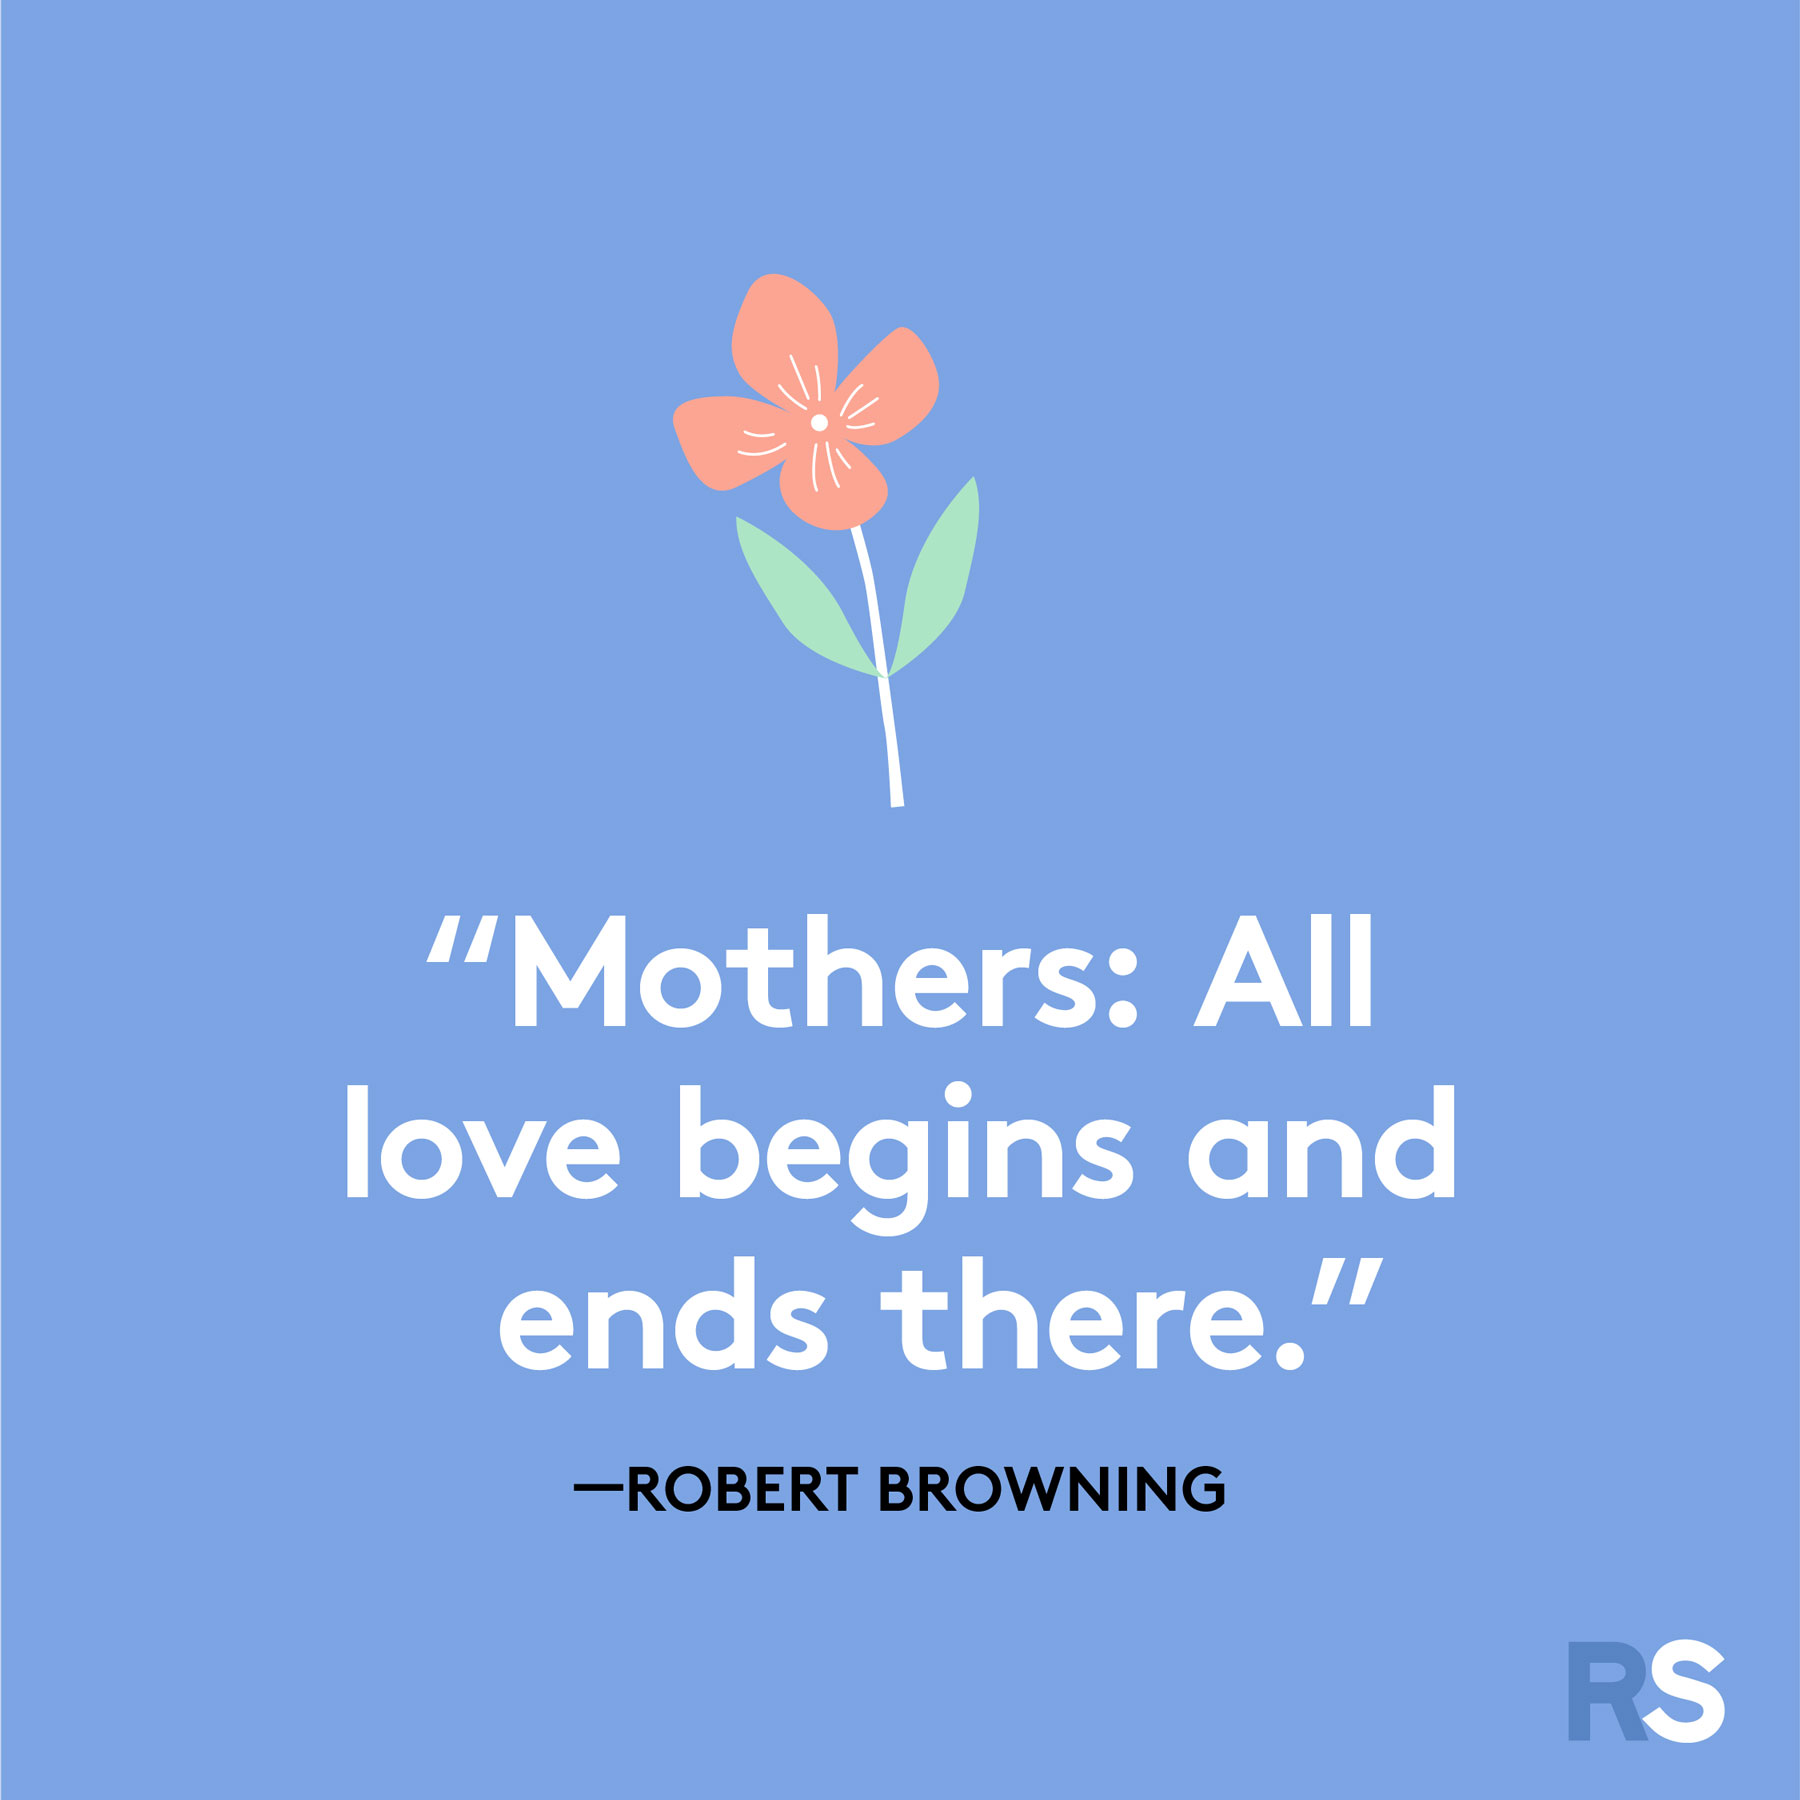 Mother's Day quotes and sayings - quote by Robert Browning